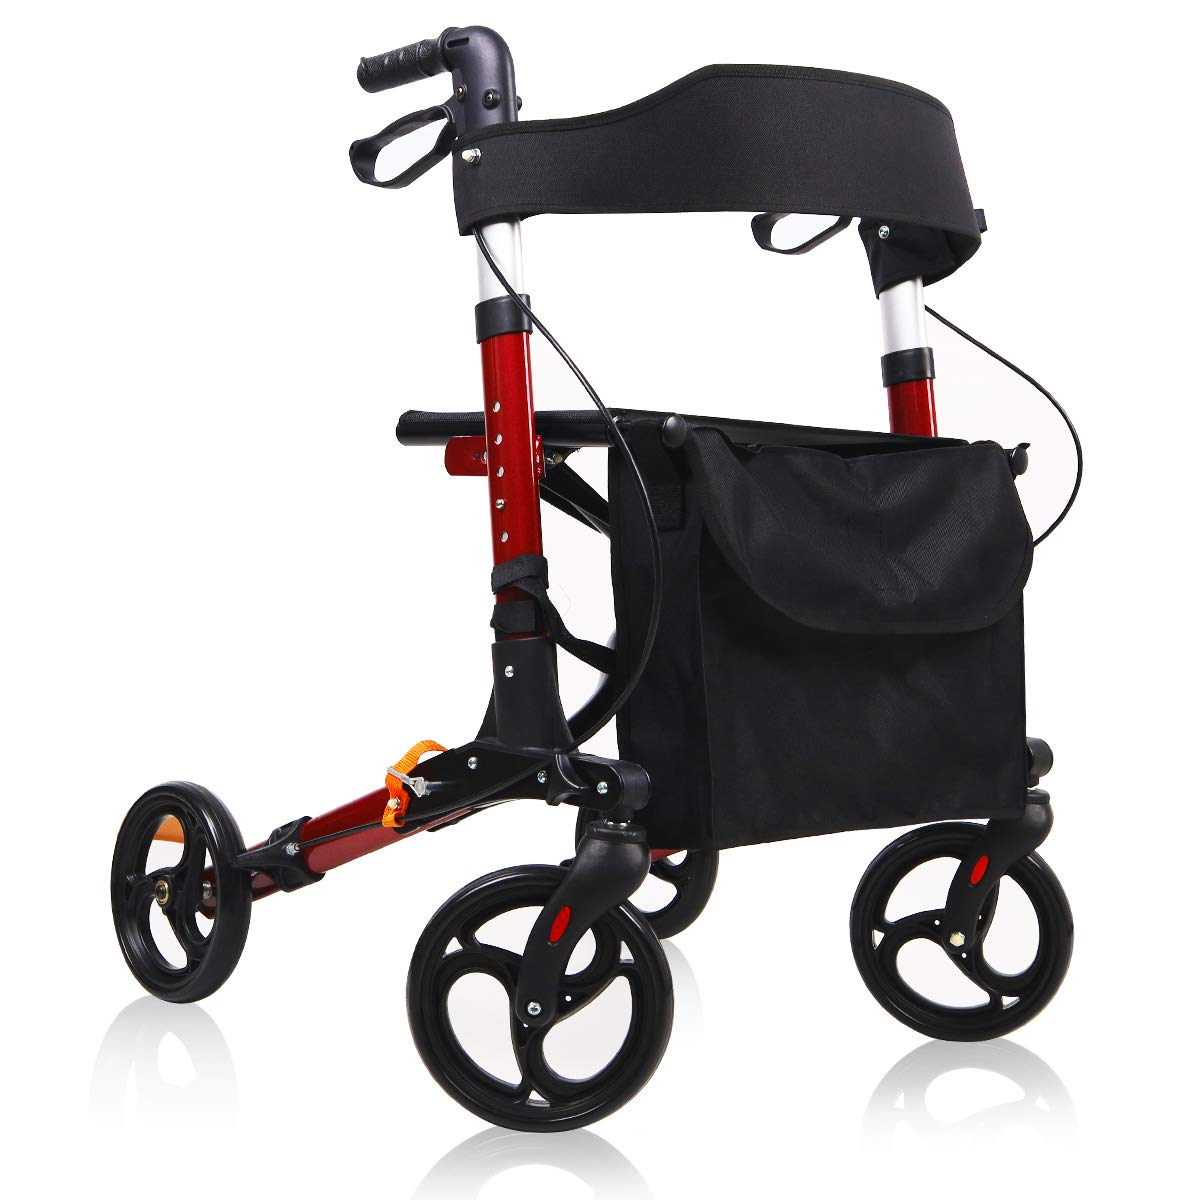 Give Me Medical Rollator Walker, 4 Wheel Foldable Compact Rolling Walker with Seat, Bag and 8 inch Wheels (Red) by Give Me